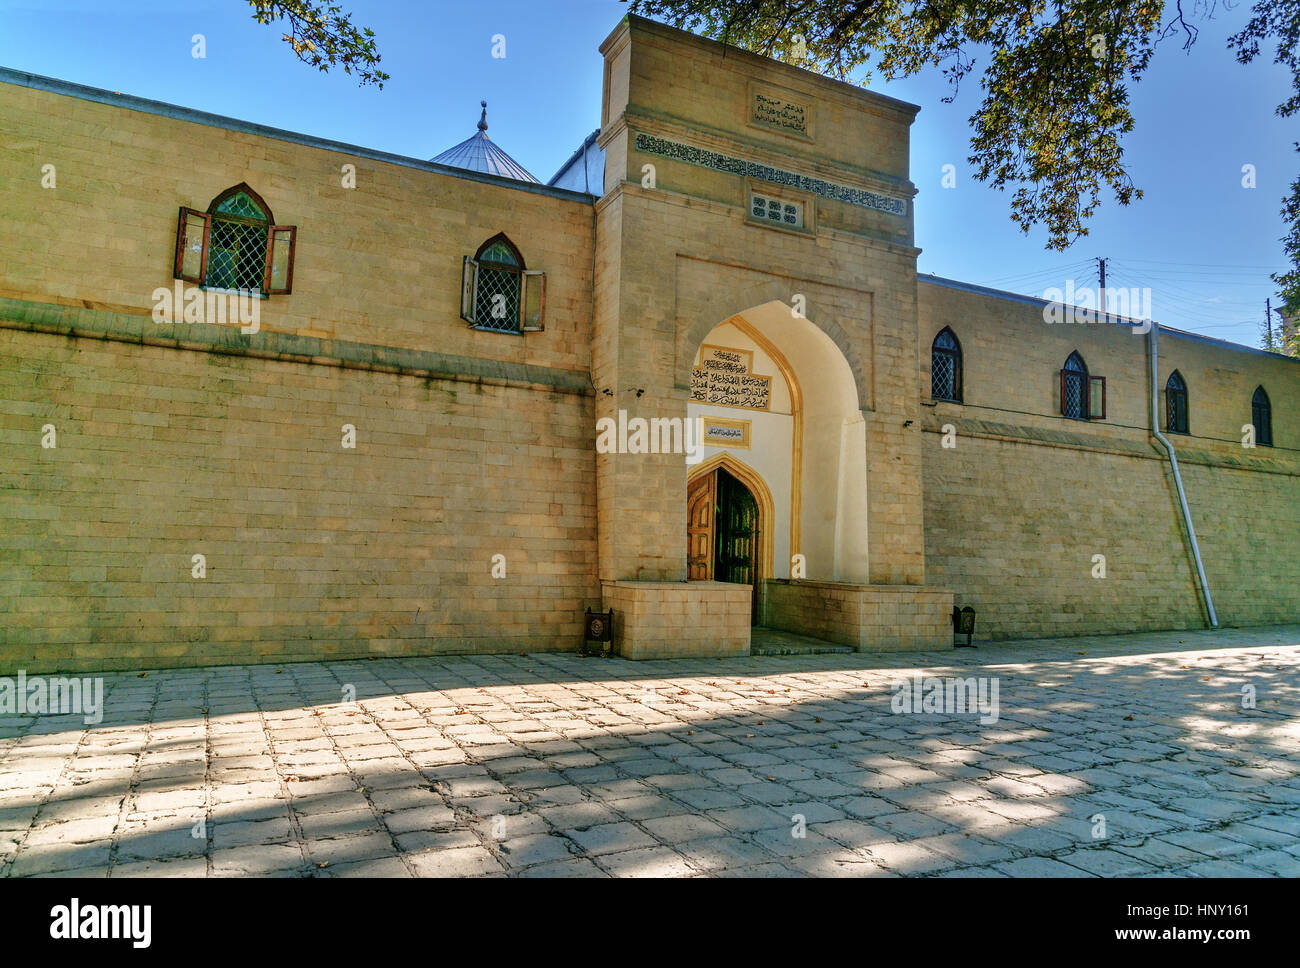 Juma Mosque - the most ancient mosque in Russia. Old trees Platanus orientalis in the yard. Derbent. Republic of - Stock Image